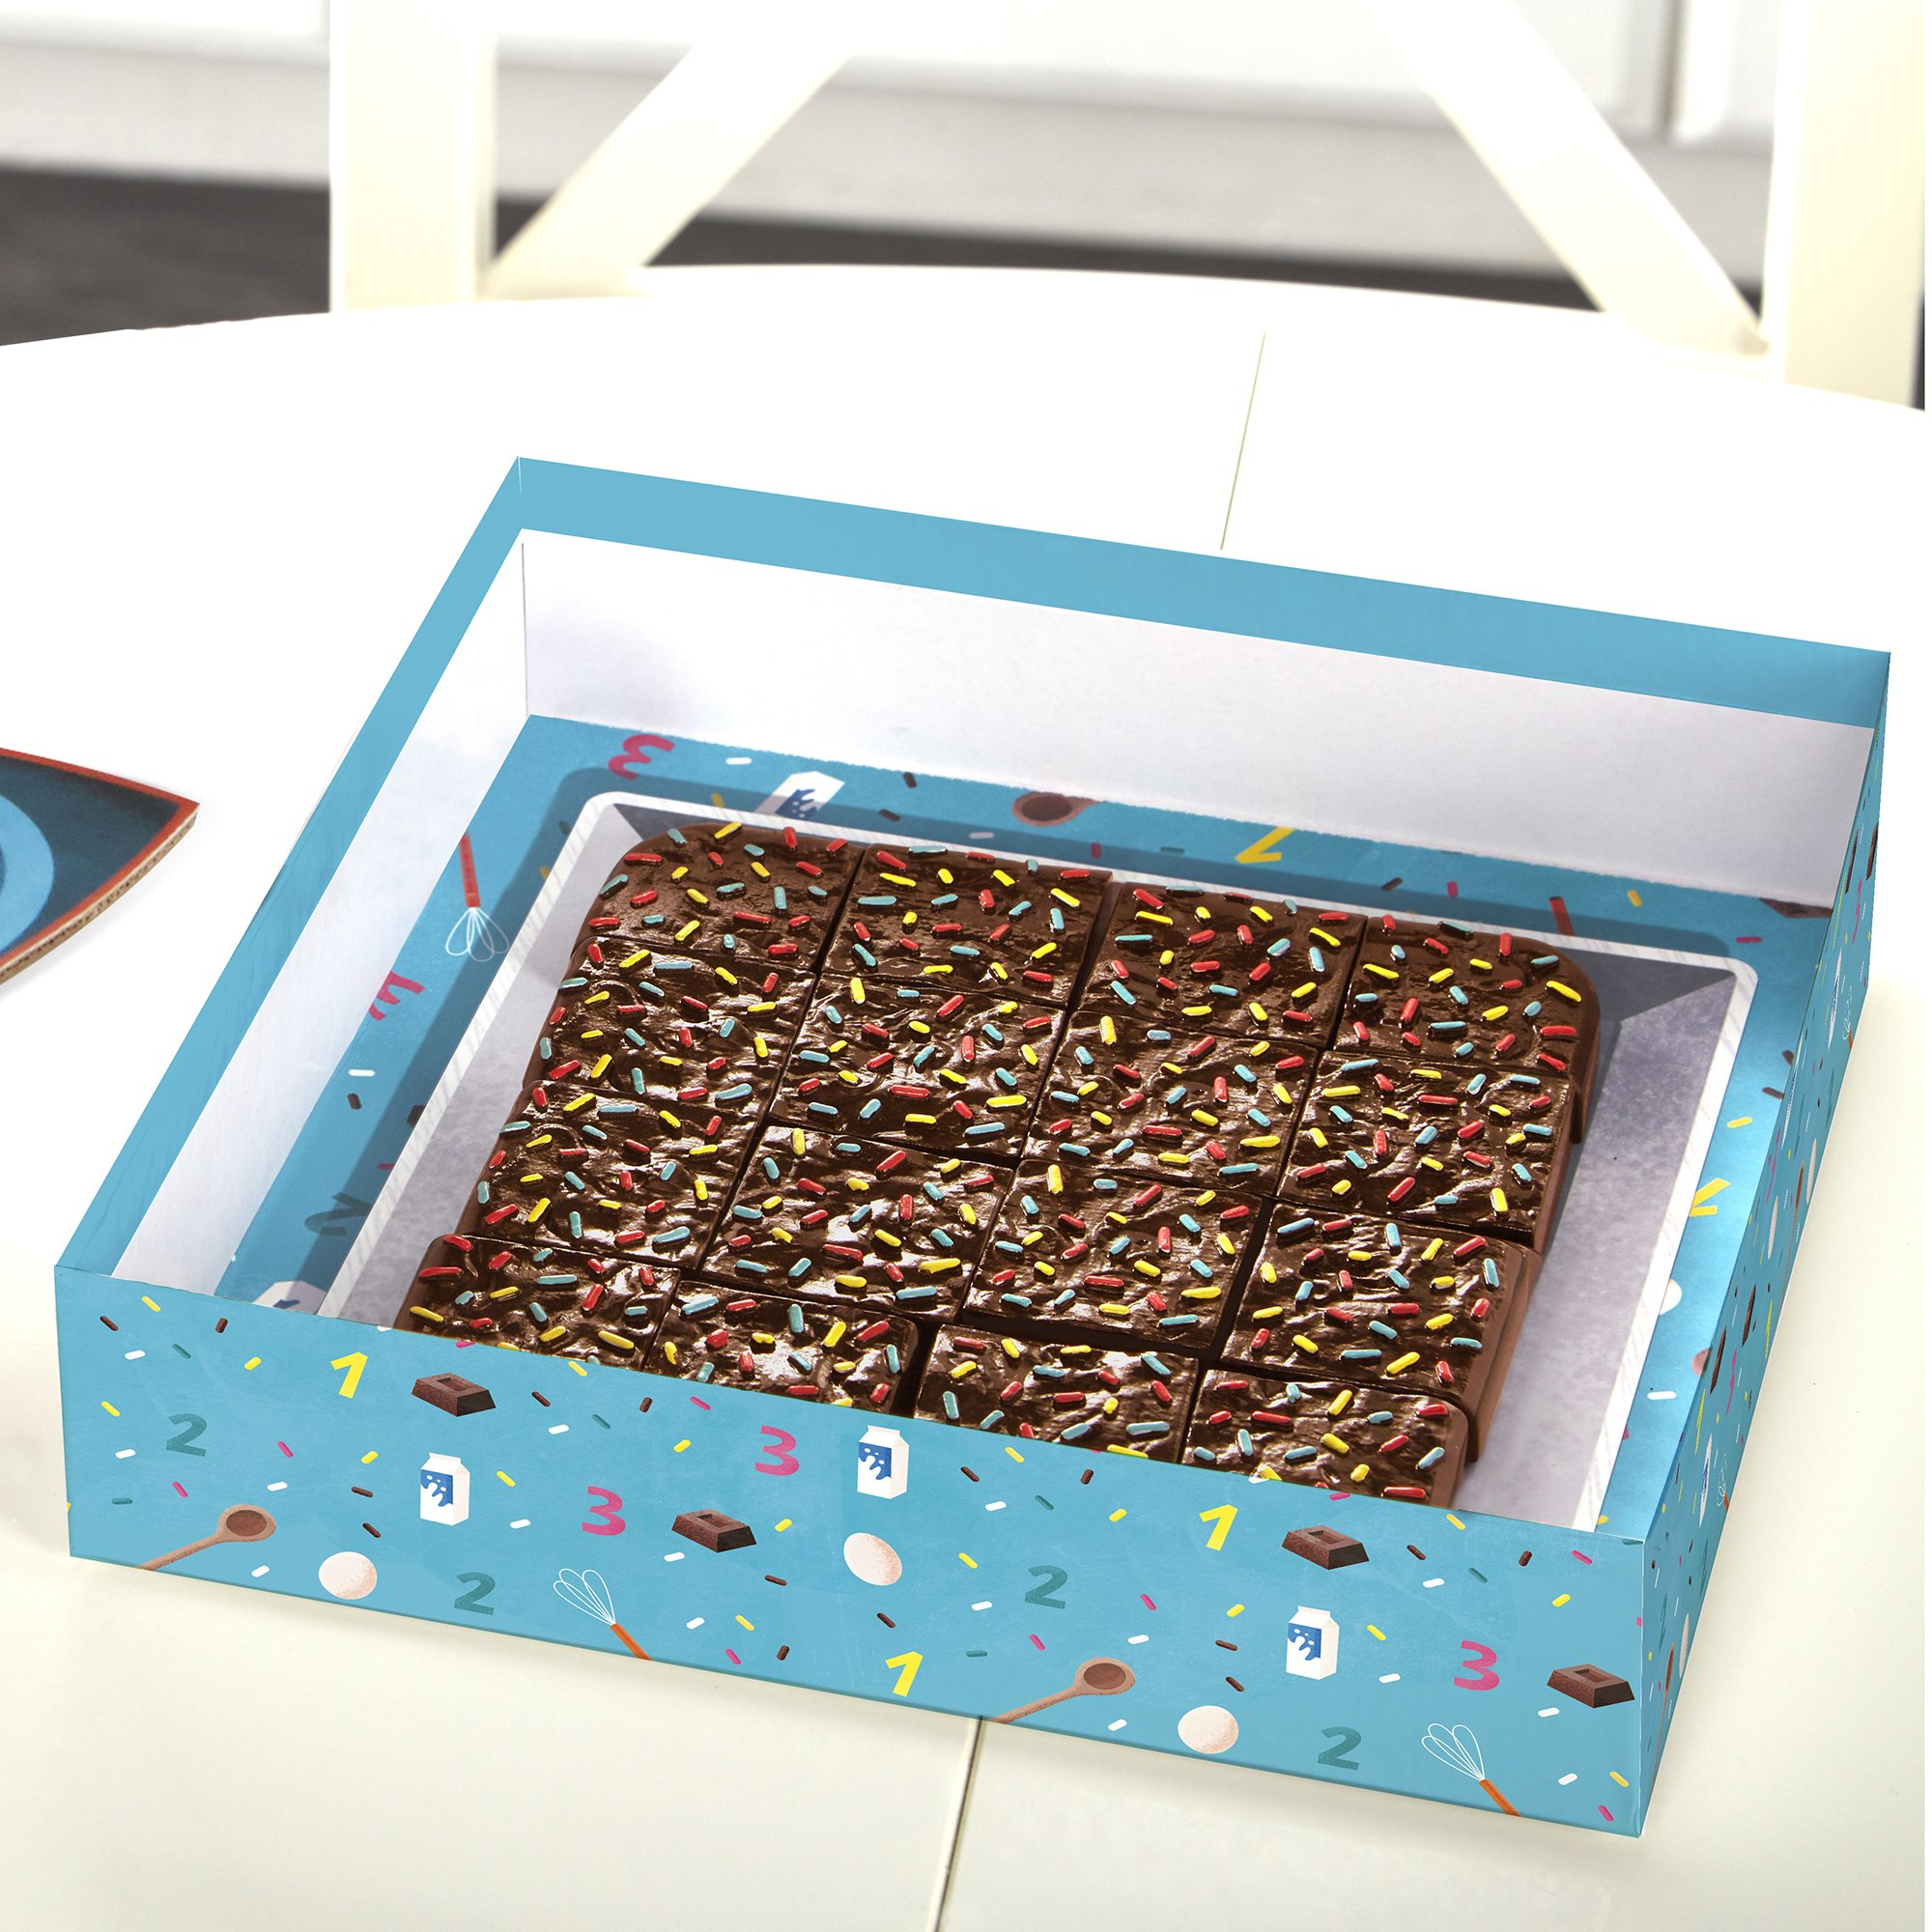 Educational Insights Brownie Match Game - image 2 of 5